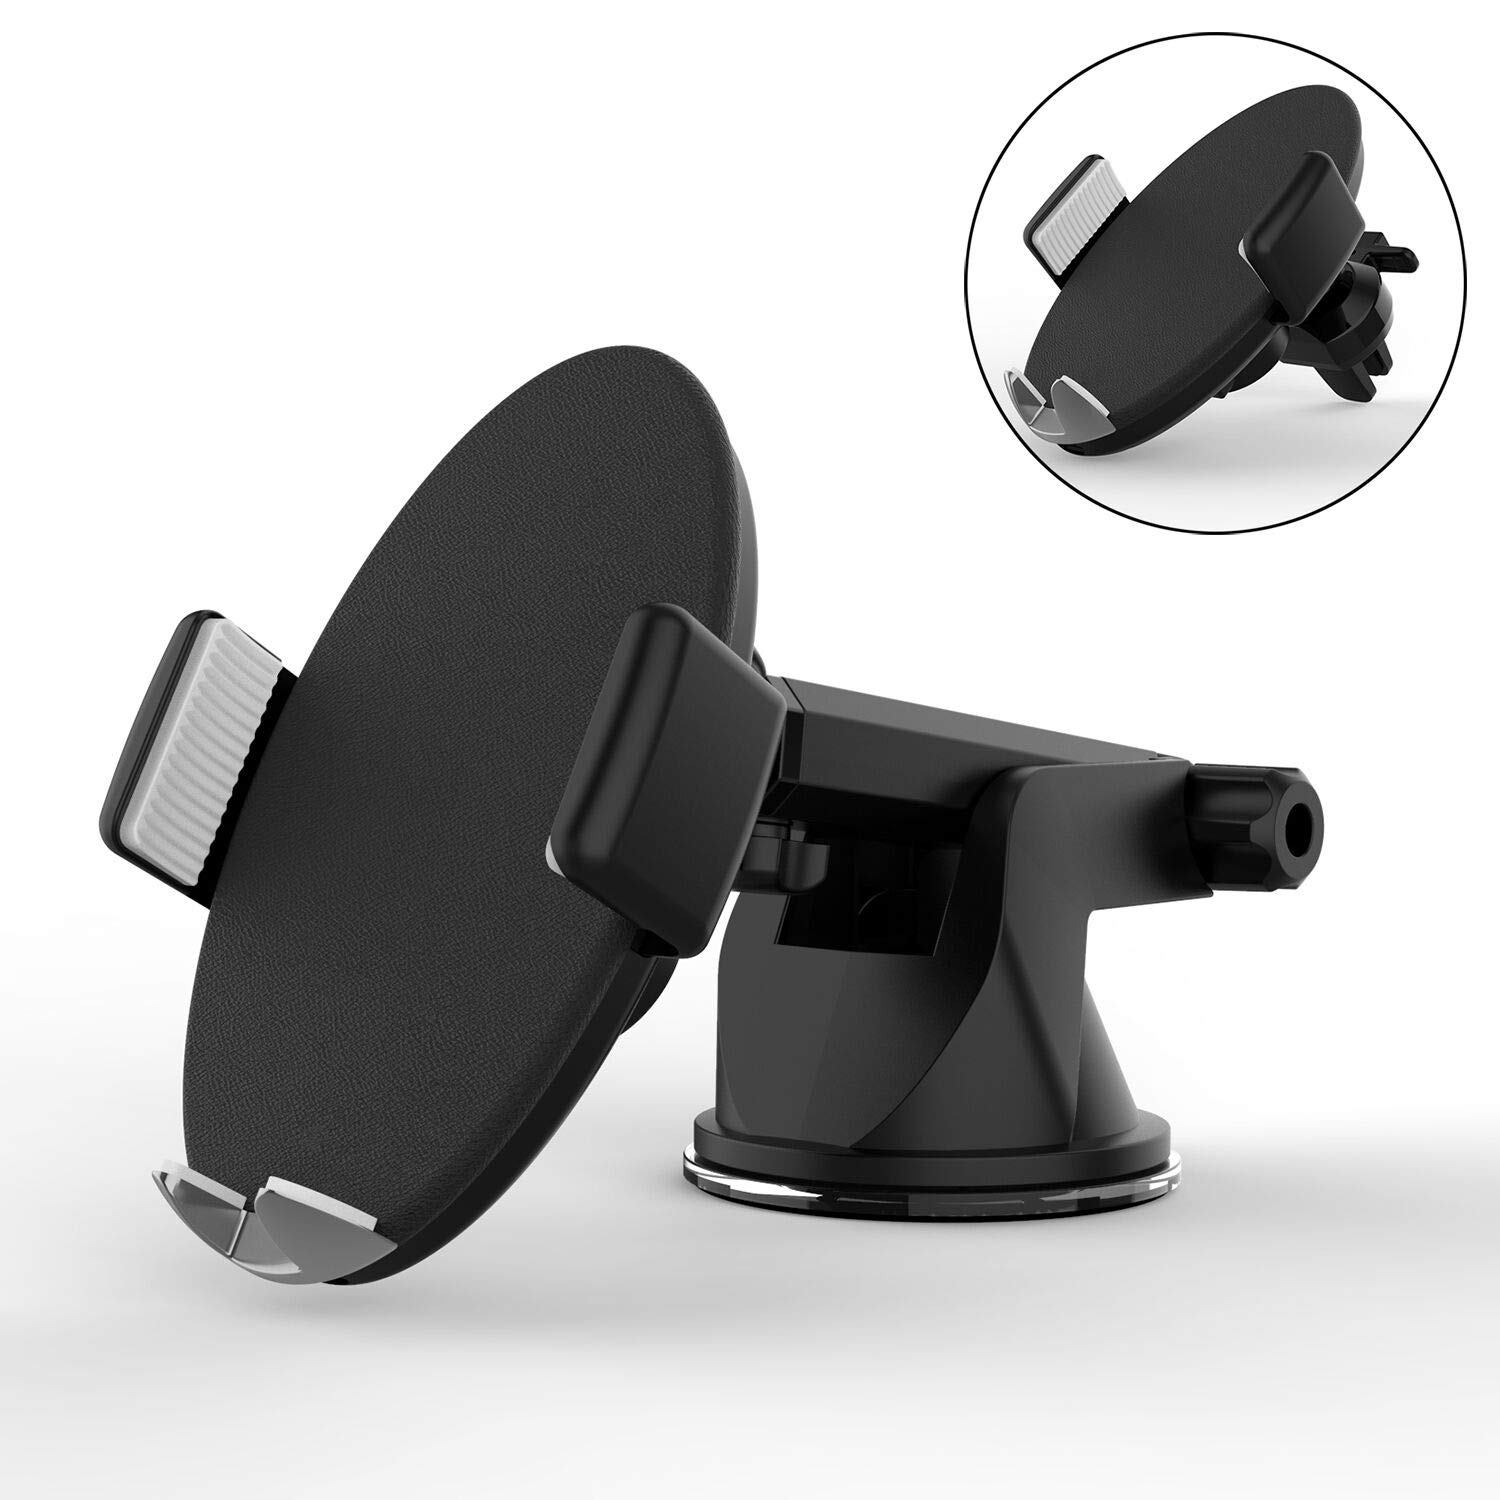 Wireless Car Charger,Touch Sensitive Automatic Qi Wireless Charger Car Mount with 360° Air Vent Leather Pad 10W Fast Charging Holder Compatible with iPhone X XR 8,Samsung Galaxy S9 S8 Note 8 and More by WELUV